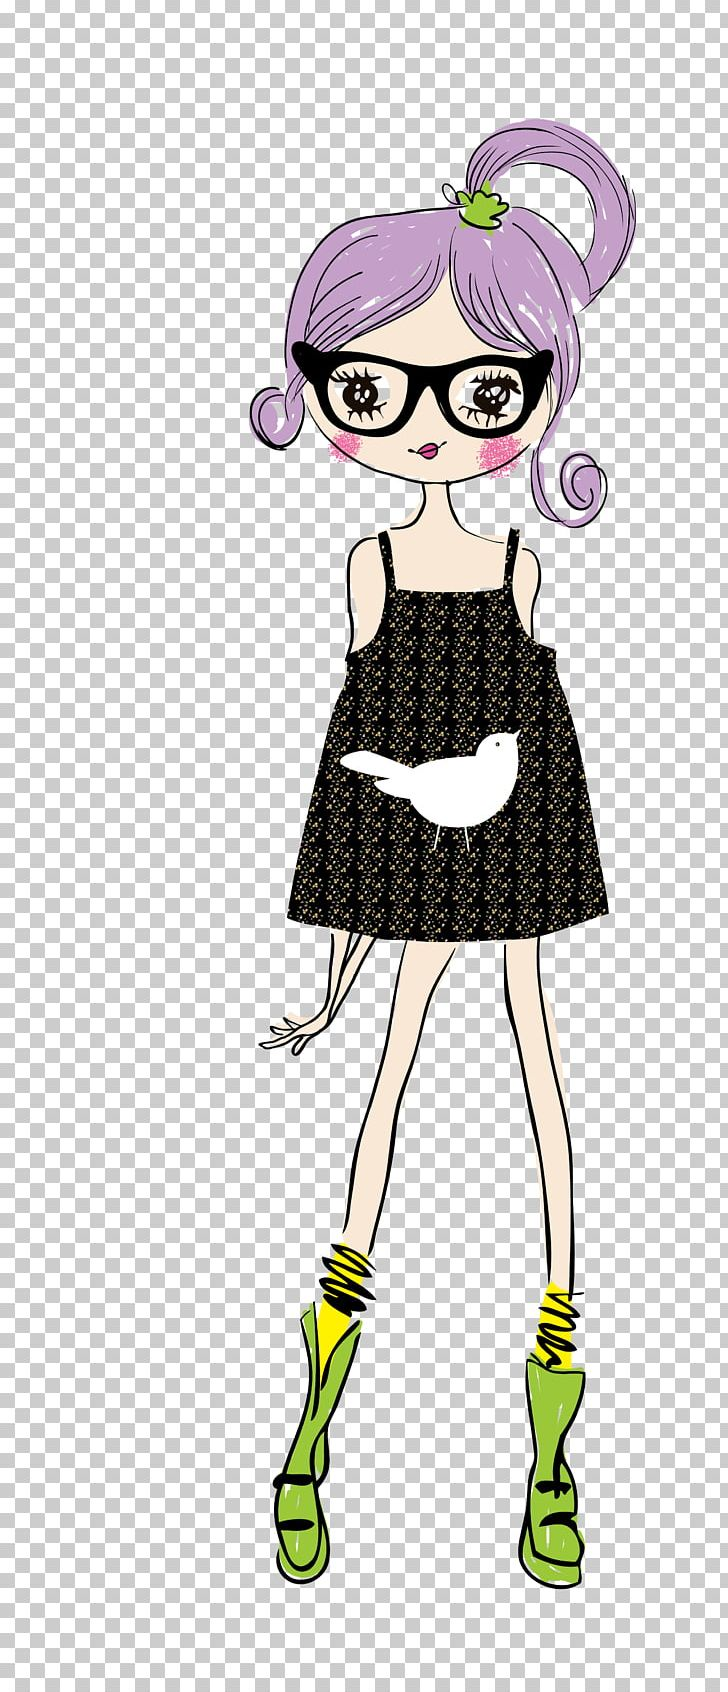 Cartoon Drawing Animation Girl Illustration Png Clipart Anime